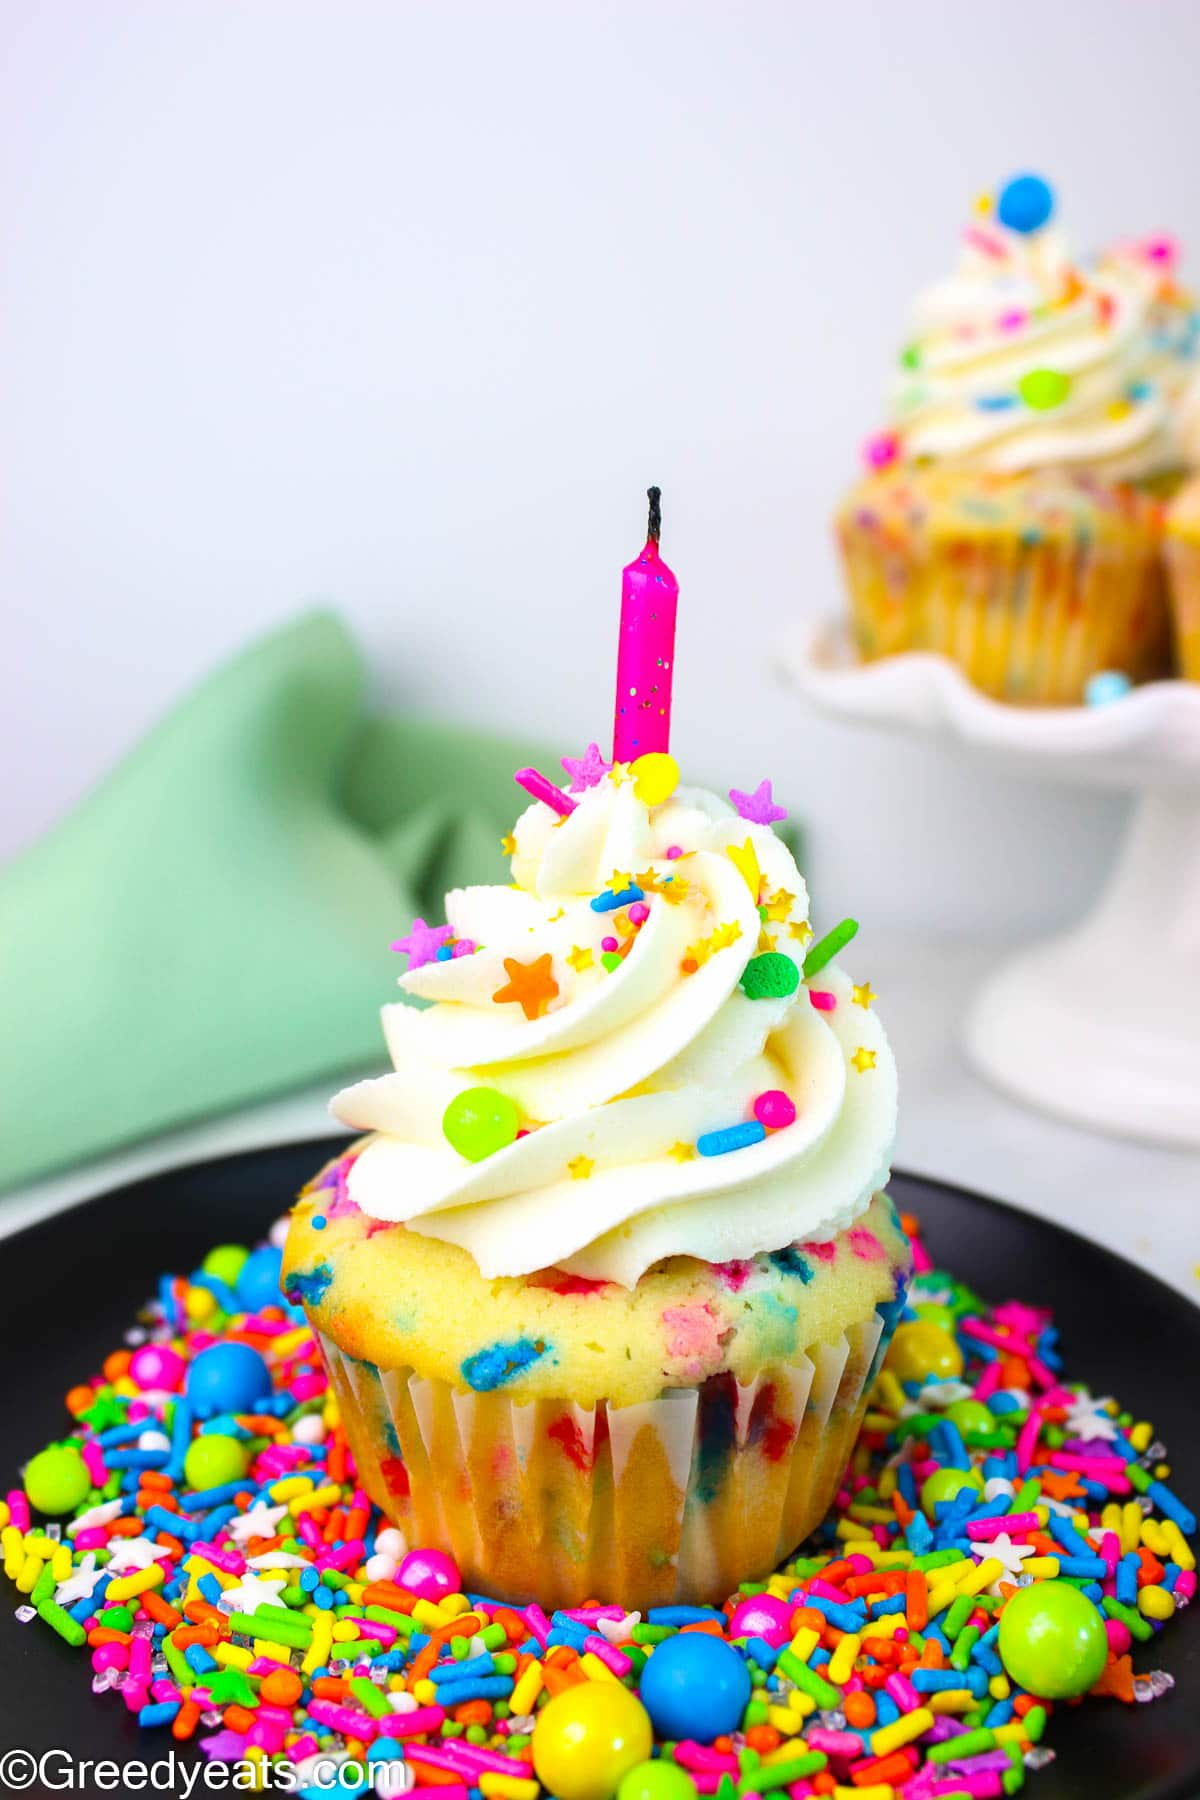 Funfetti Cupcake topped with Vanilla Buttercream and rainbow sprinkles on a black plate.